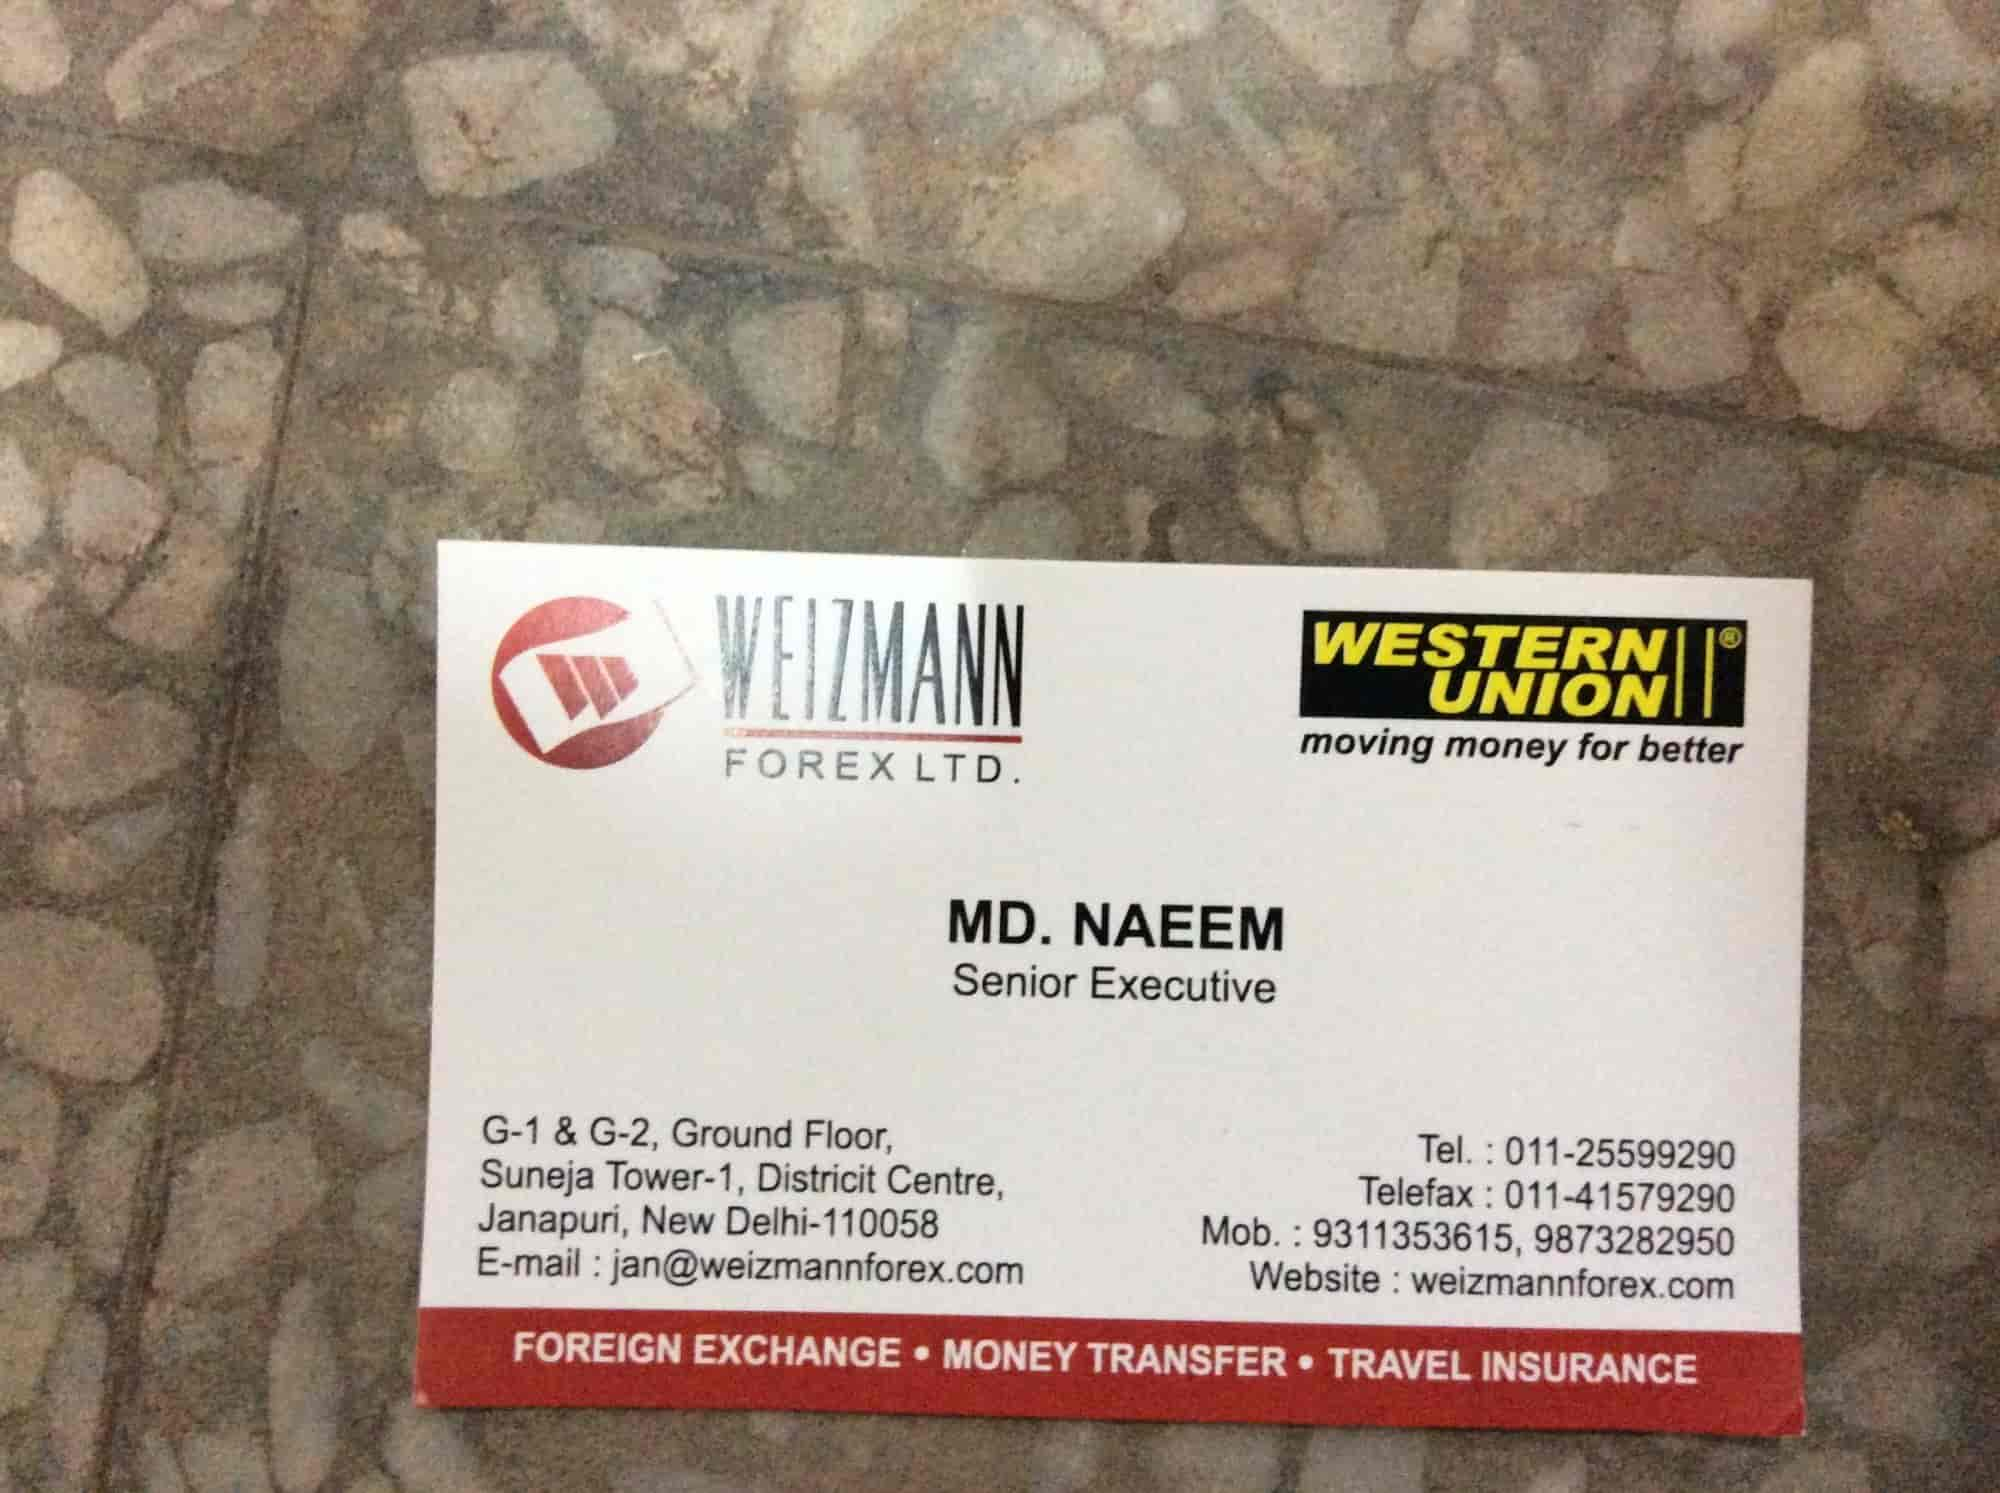 Weizmann Forex Ltd. in Connaught Place, Delhi | Sulekha Delhi